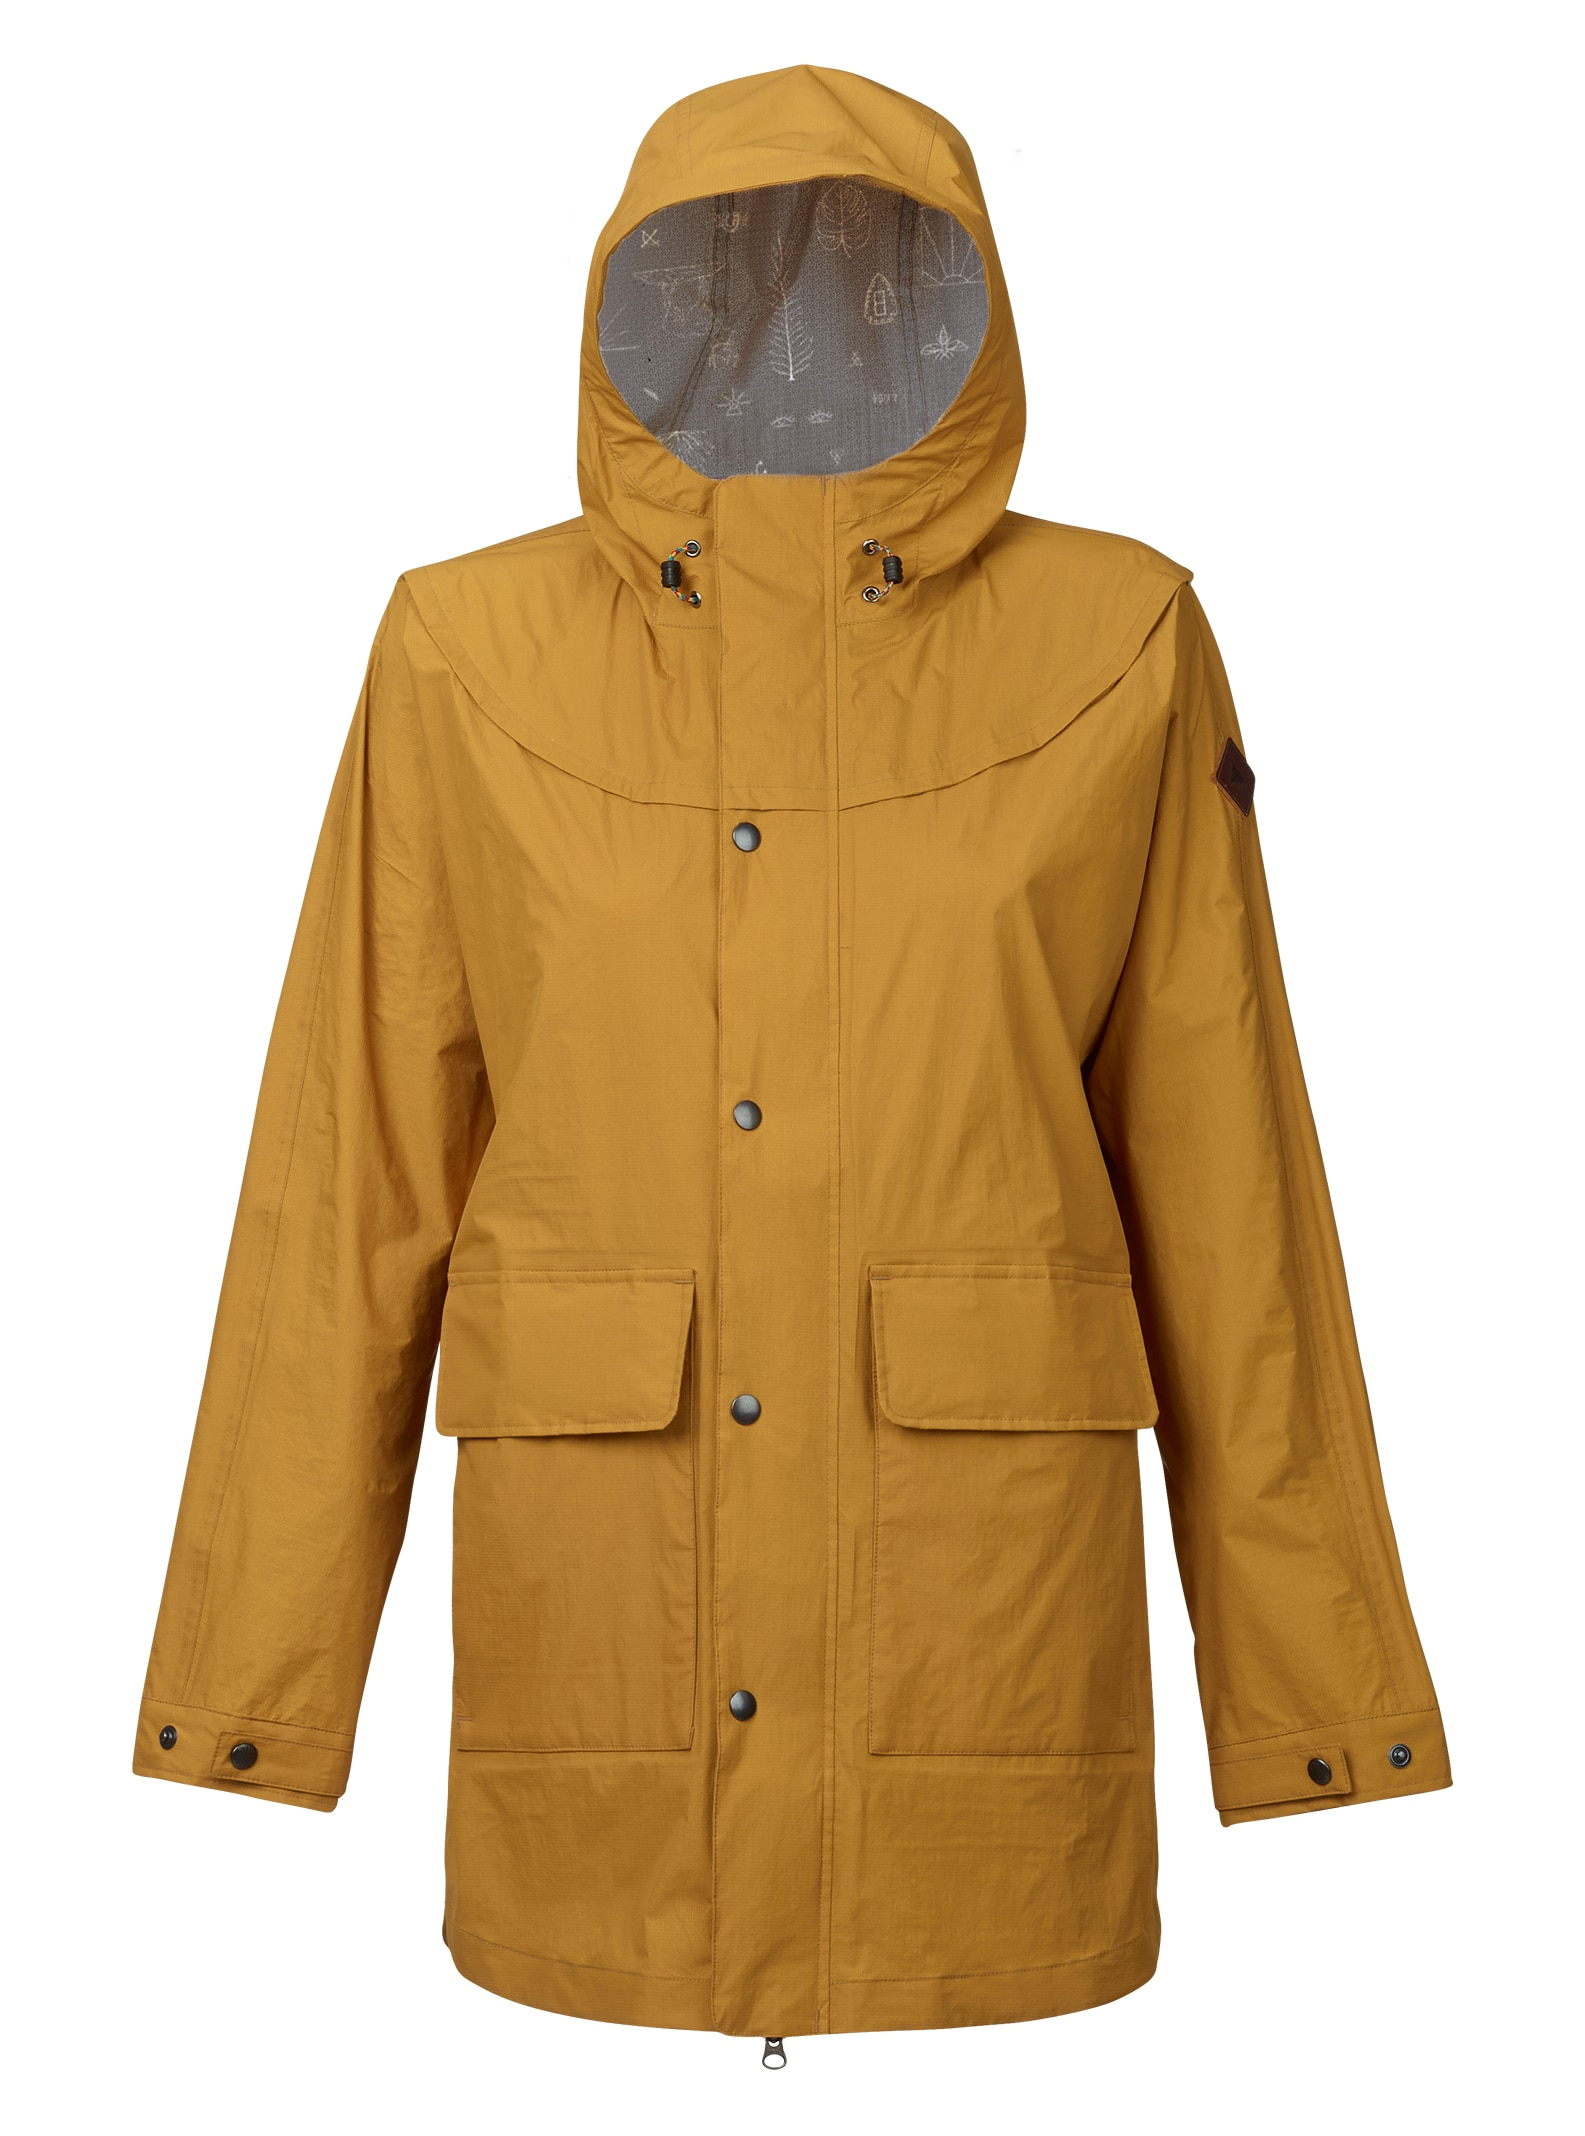 Burton Flare Parka Rain Jacket shown in Golden Yellow